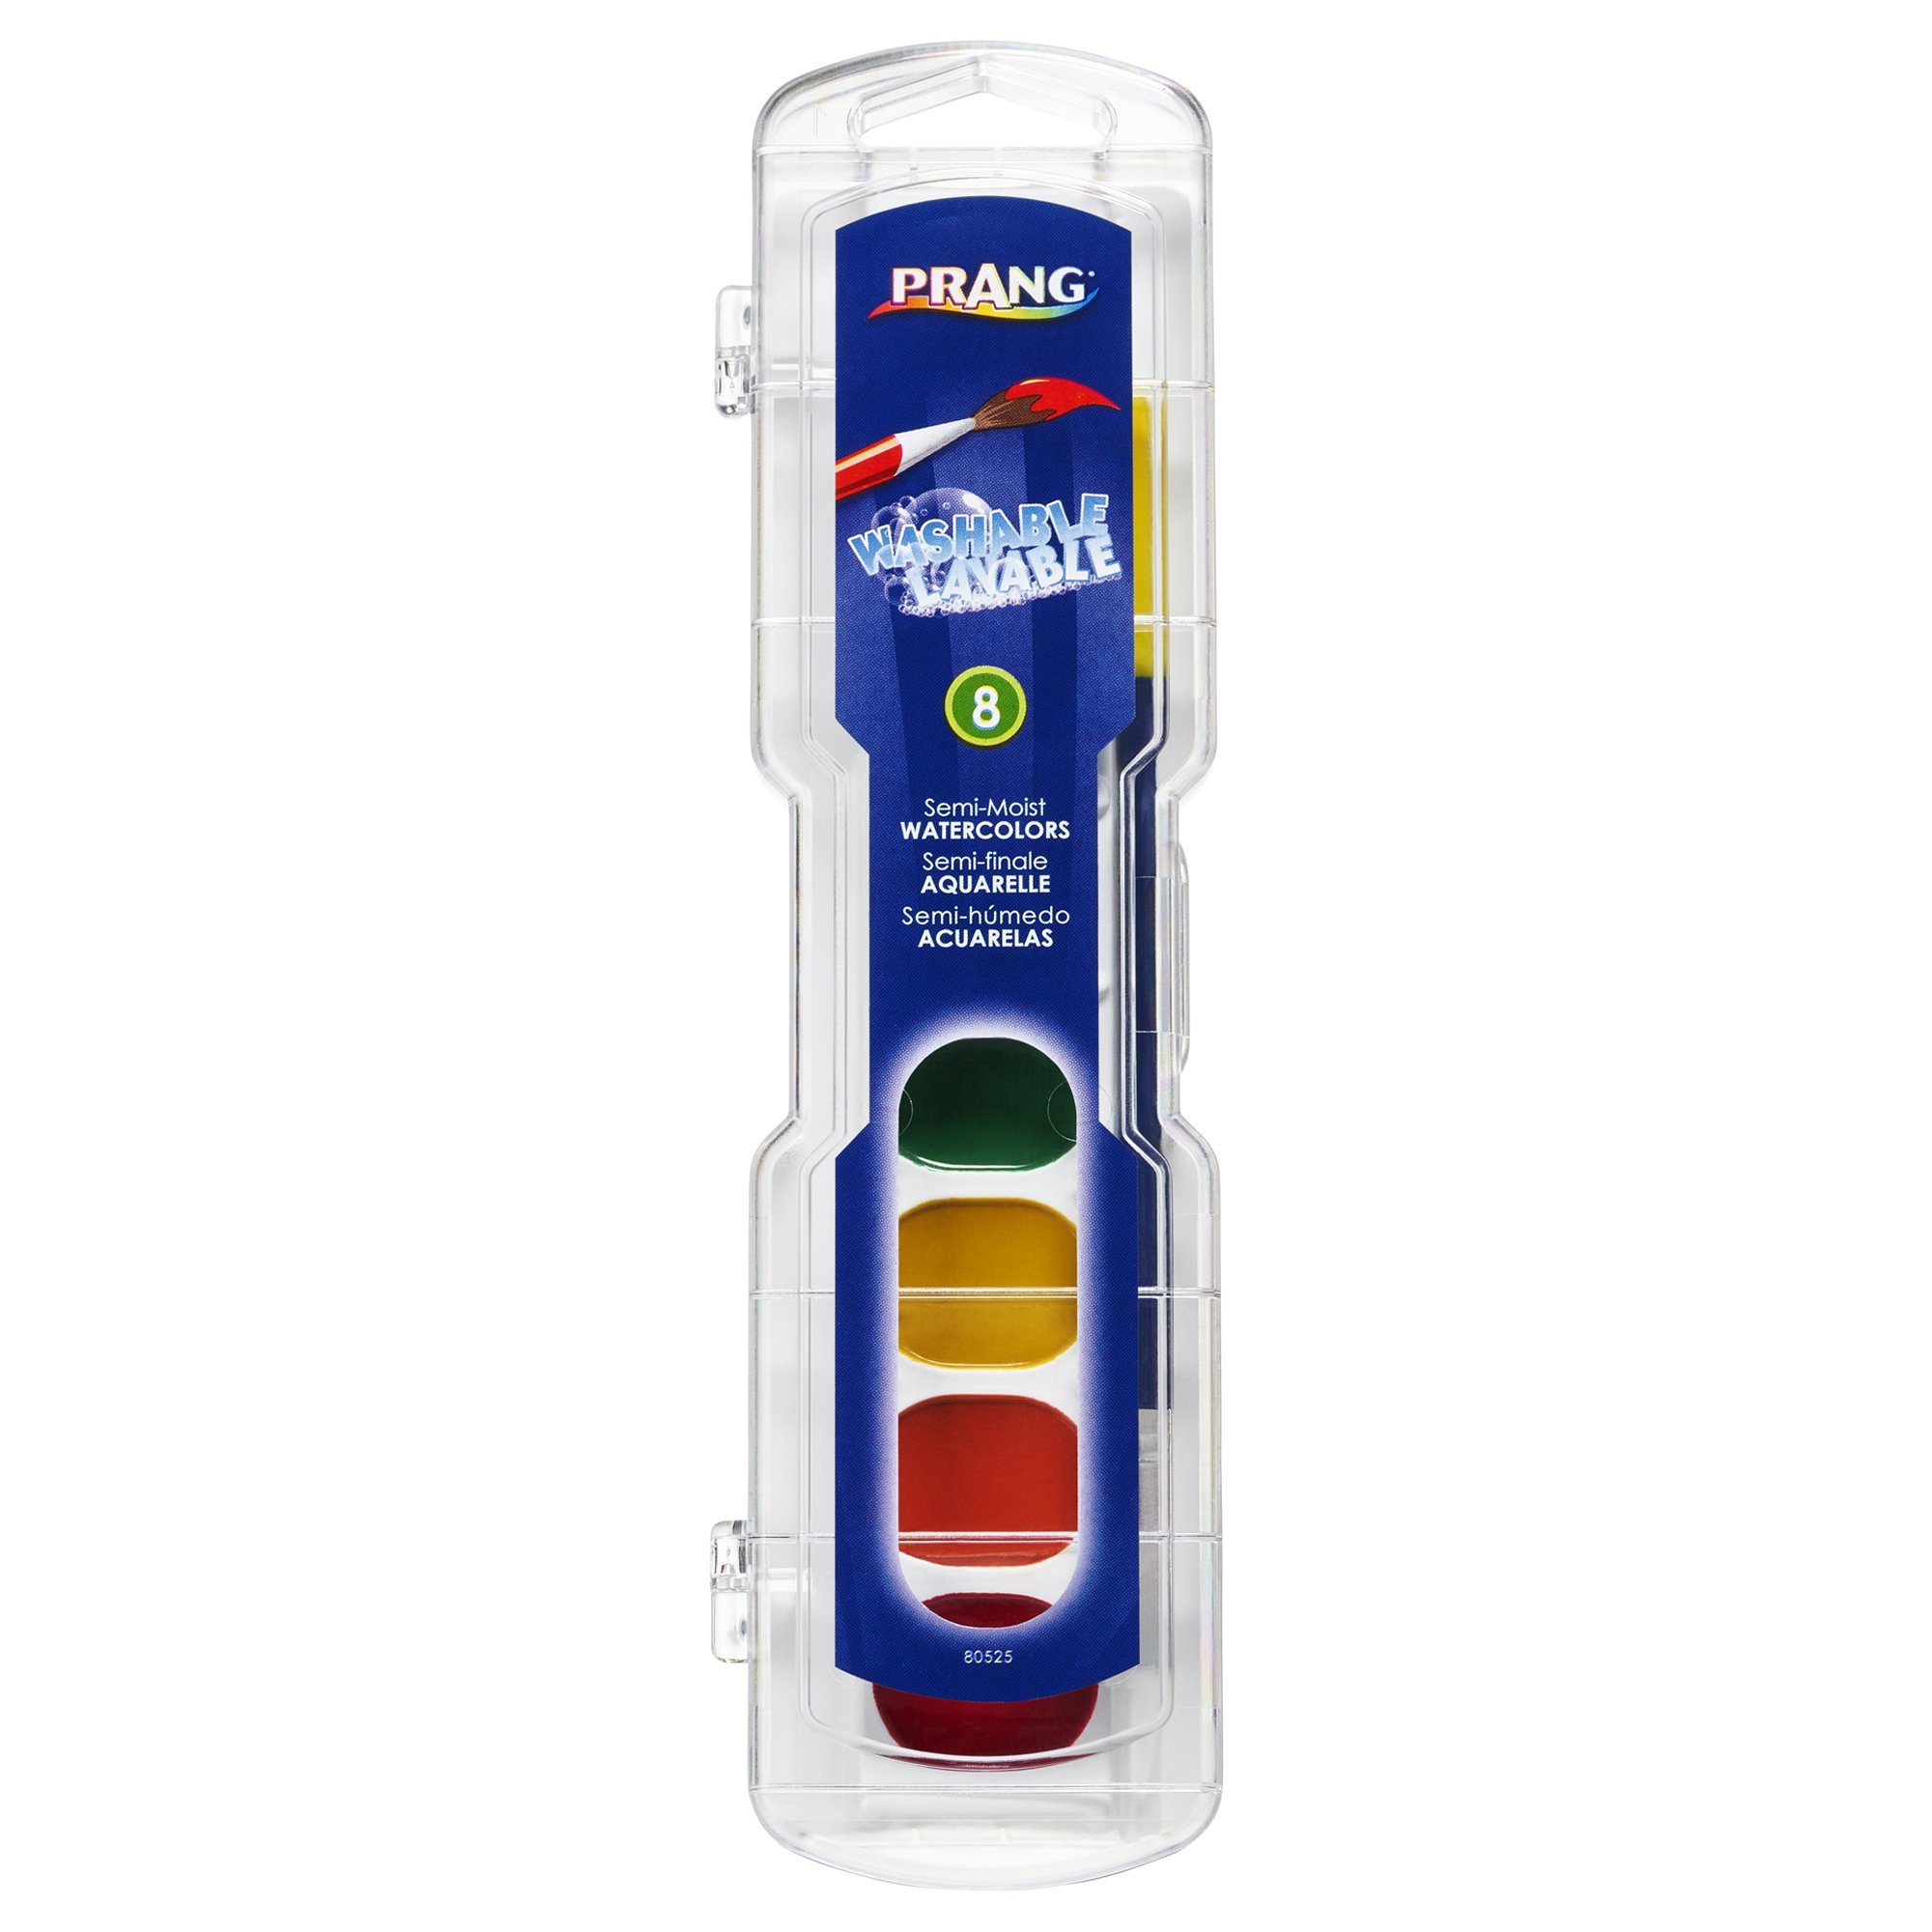 Prang Washable Watercolor Paint Set 8 Classic Colors with Brush 1-Pack (80525)